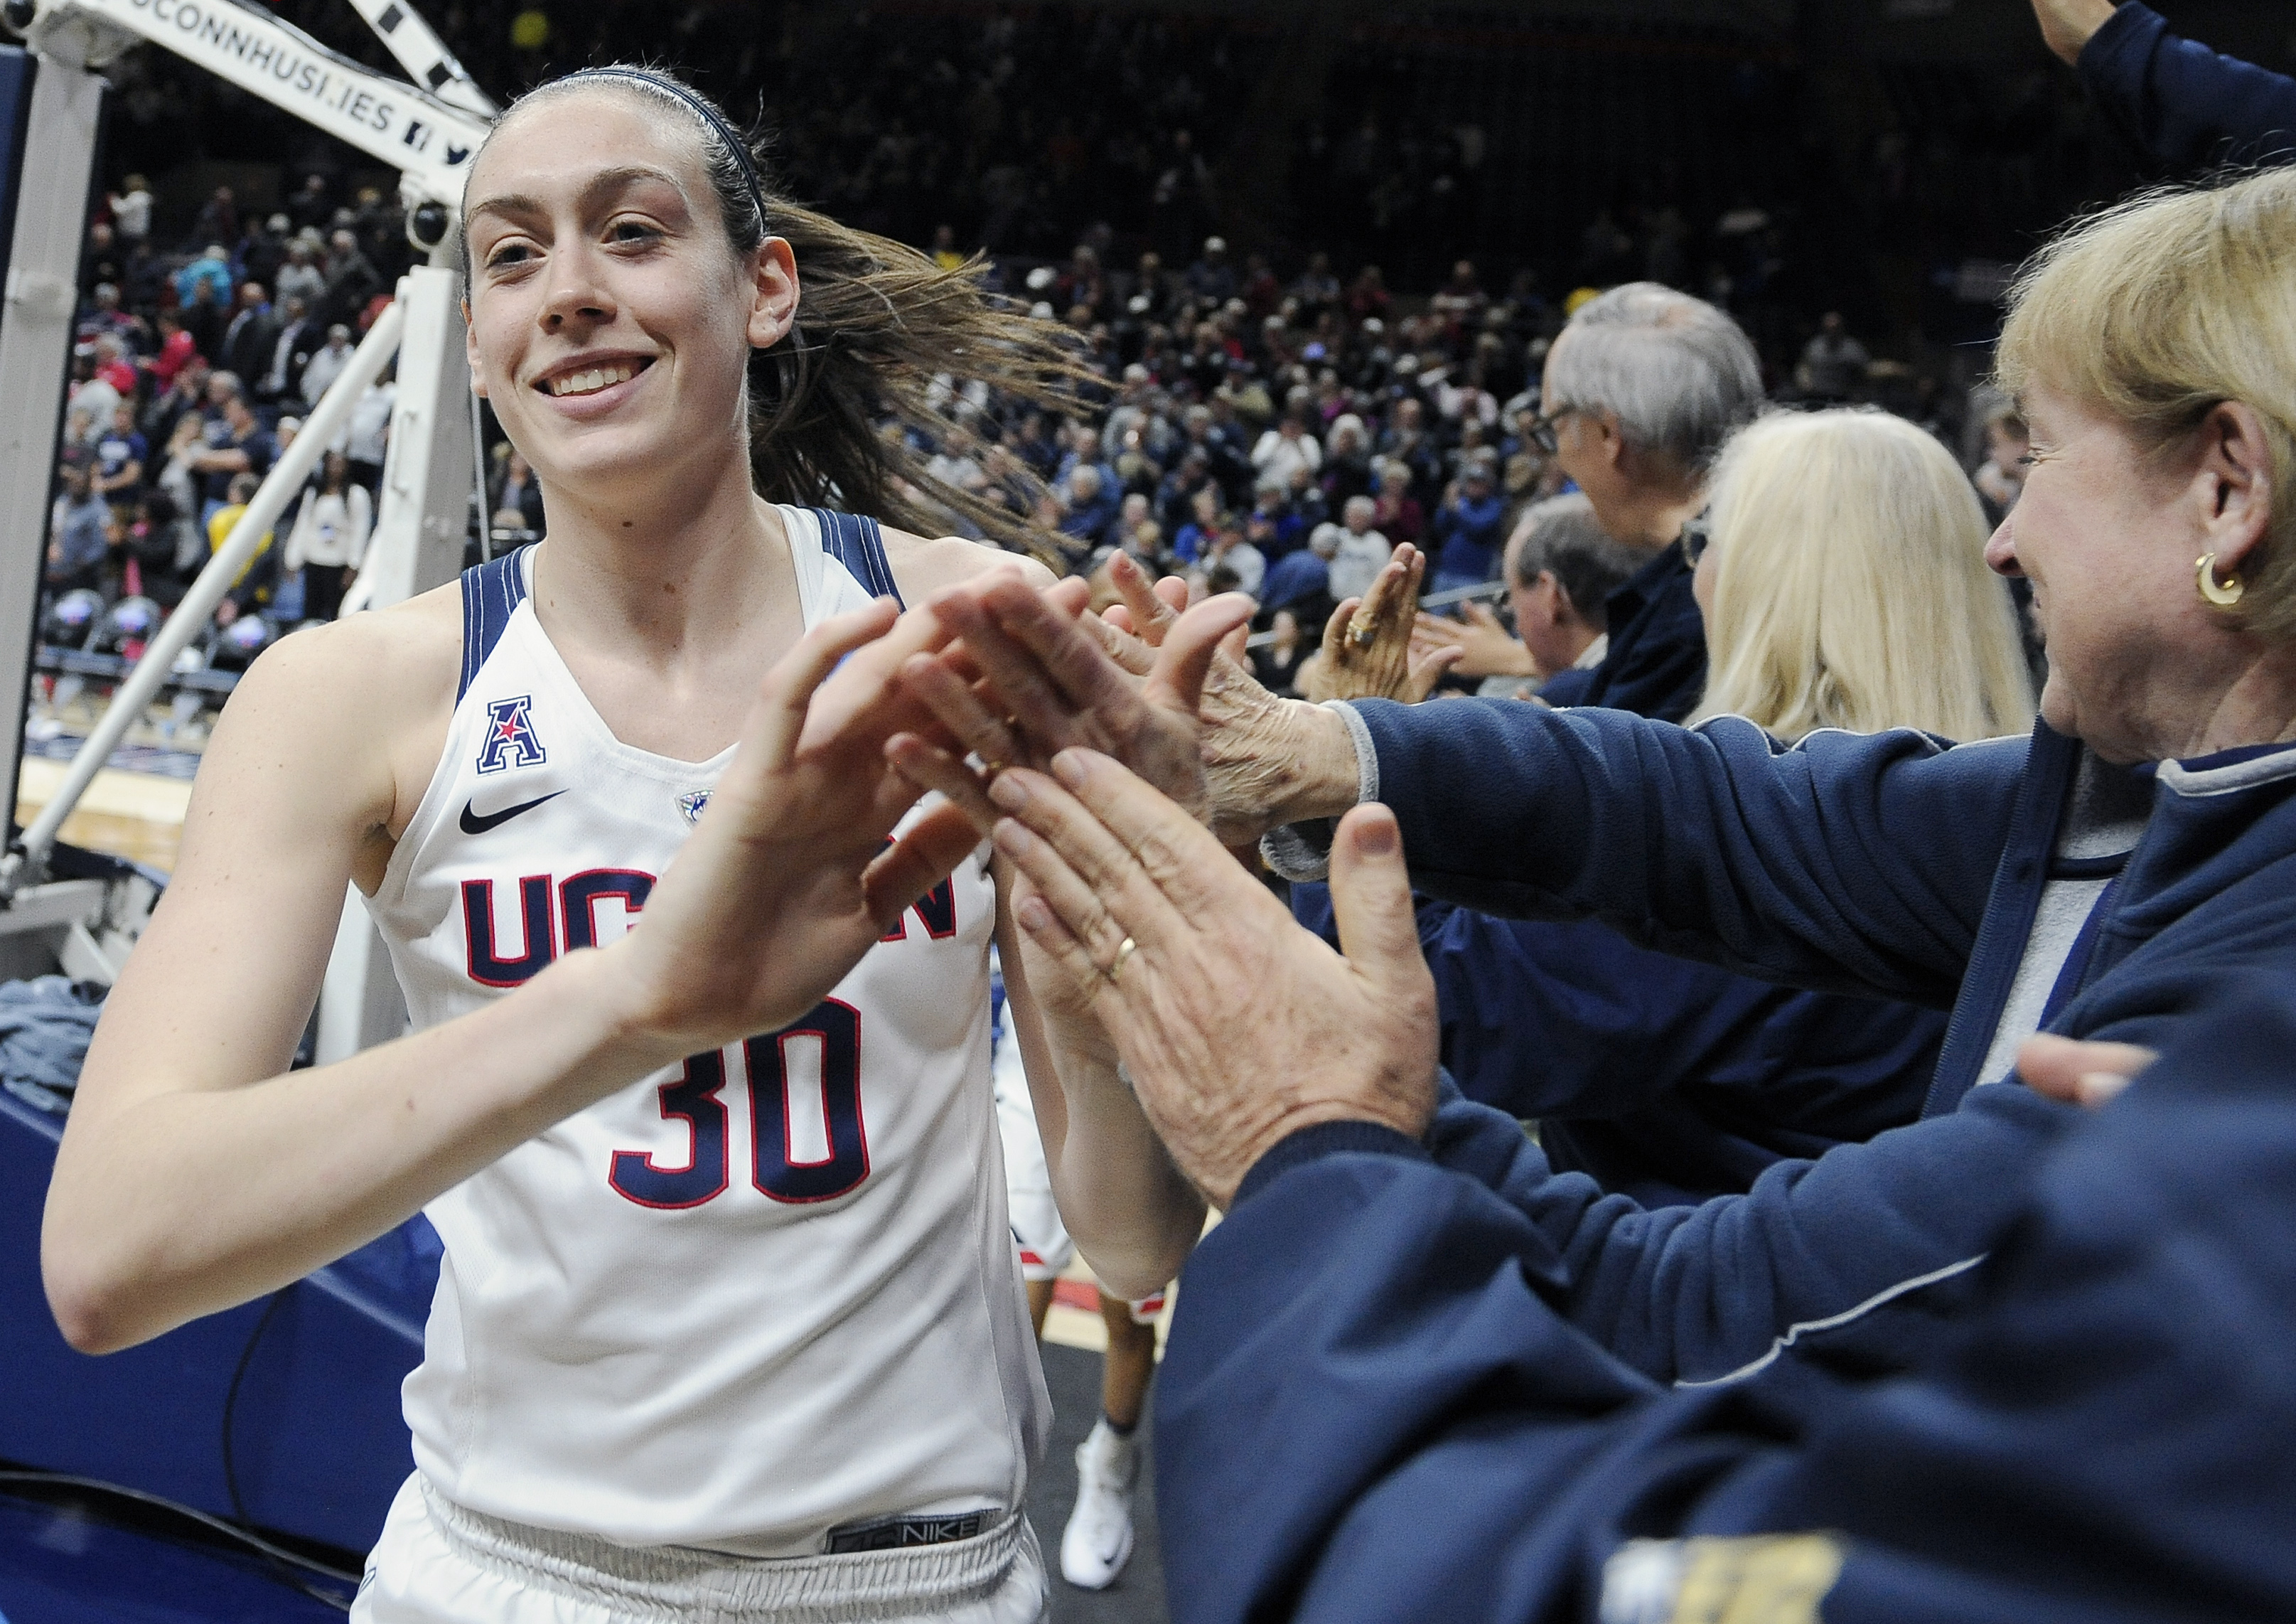 Connecticuts Breanna Stewart greets fans at the end of a second round women's college basketball game against Duquesne in the NCAA Tournament, Monday, March 21, 2016, in Storrs, Conn. UConn won 97-51. (AP Photo/Jessica Hill)